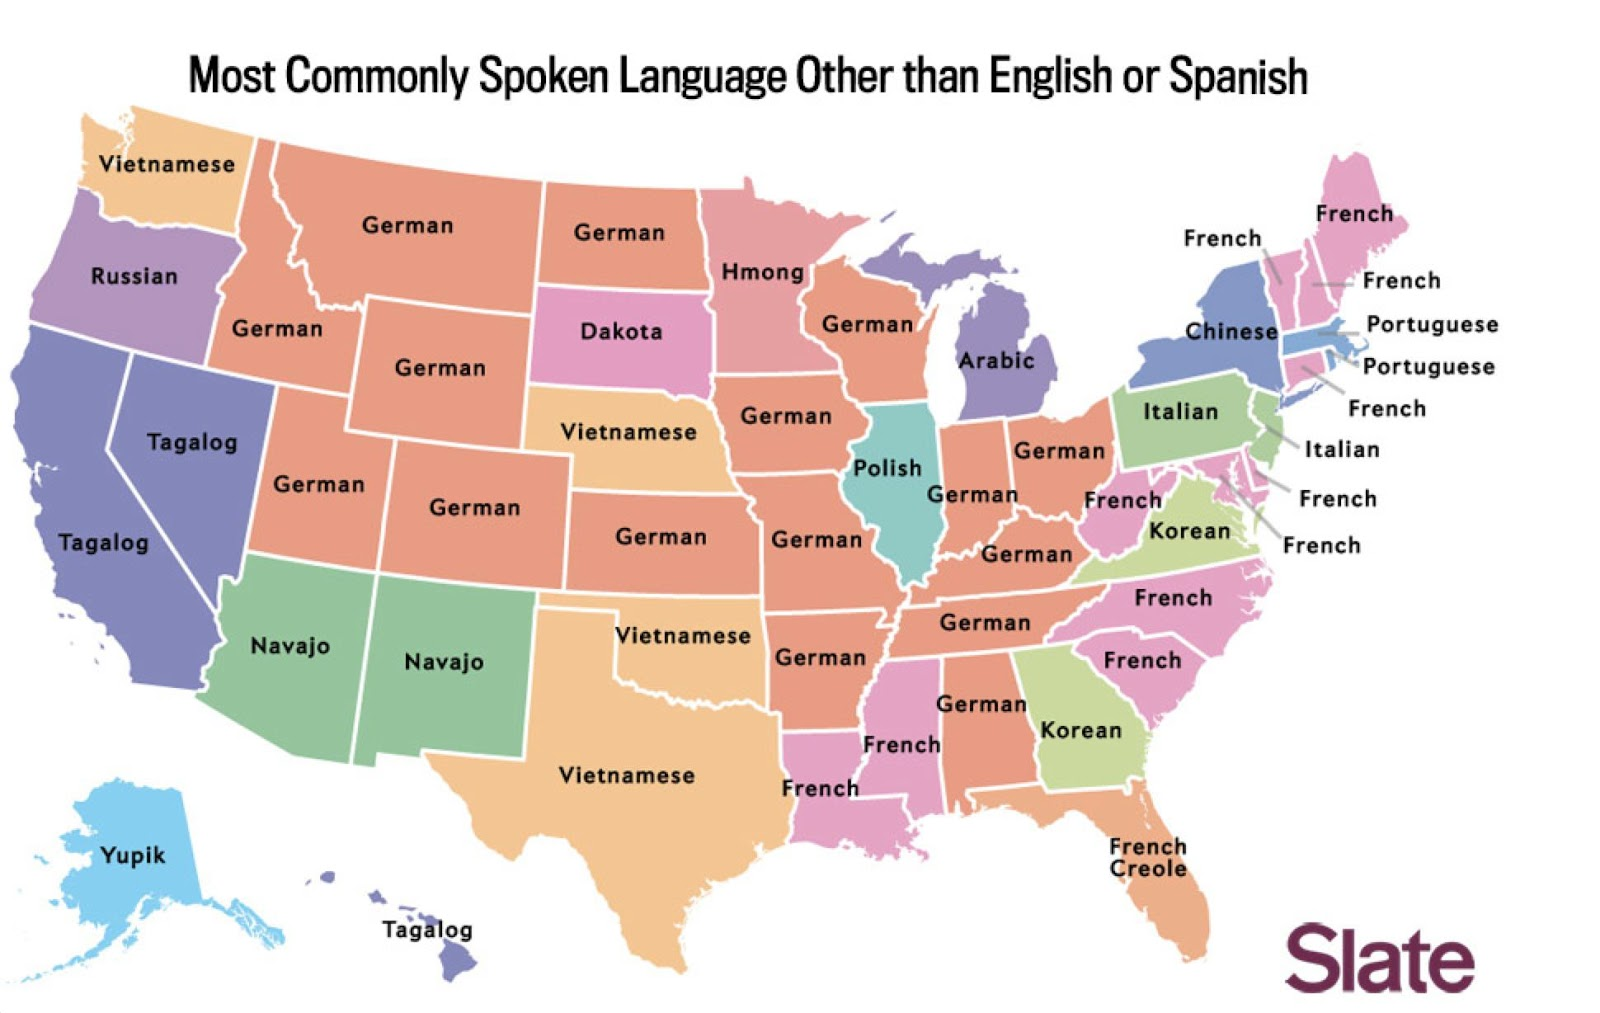 Most commonly spoken language other than English or Spanish